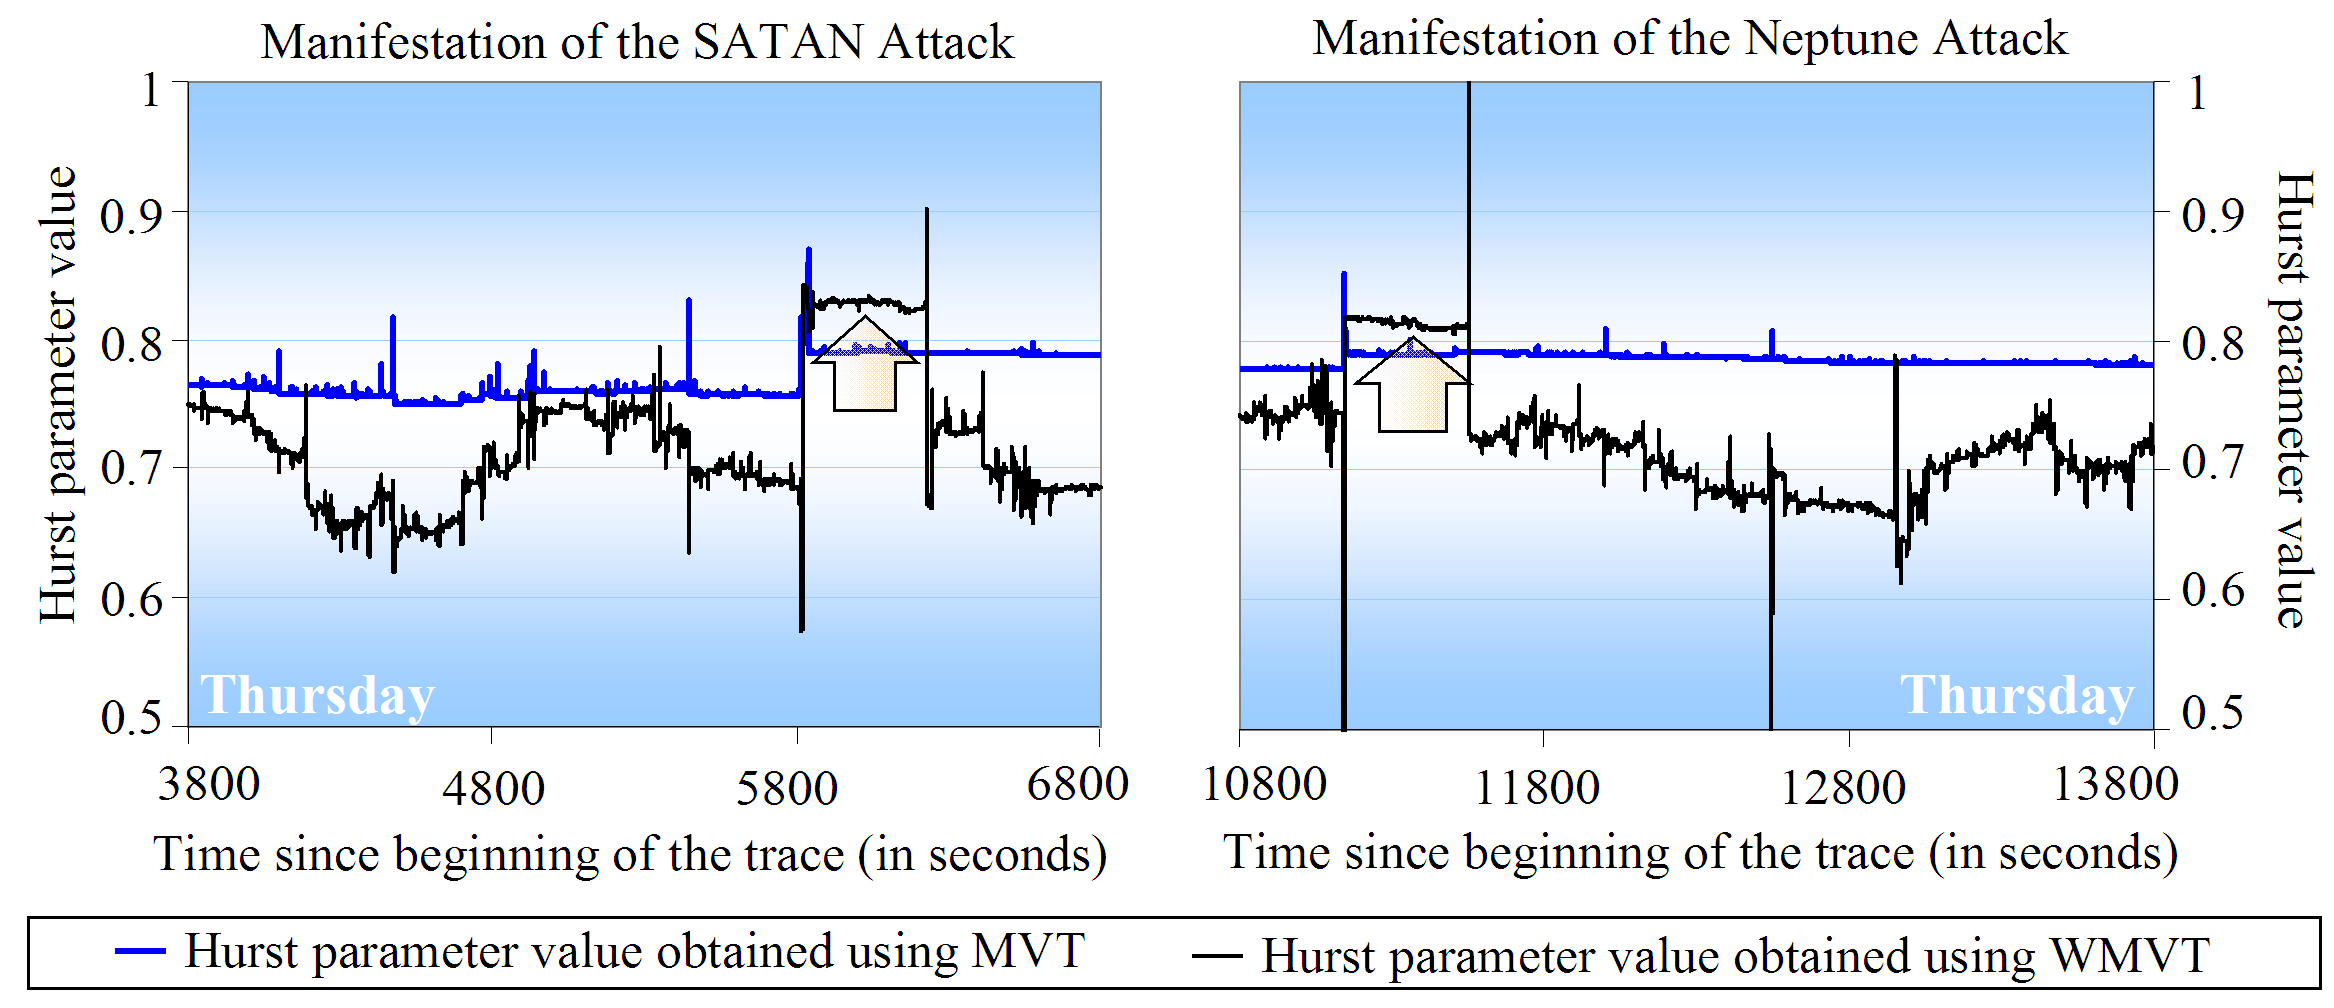 Figure 5.5: Manifestation of the intensive probe SATAN (Thursday) and of the Neptune attack (Thursday), when observed from the self-similarity analysis perspective.